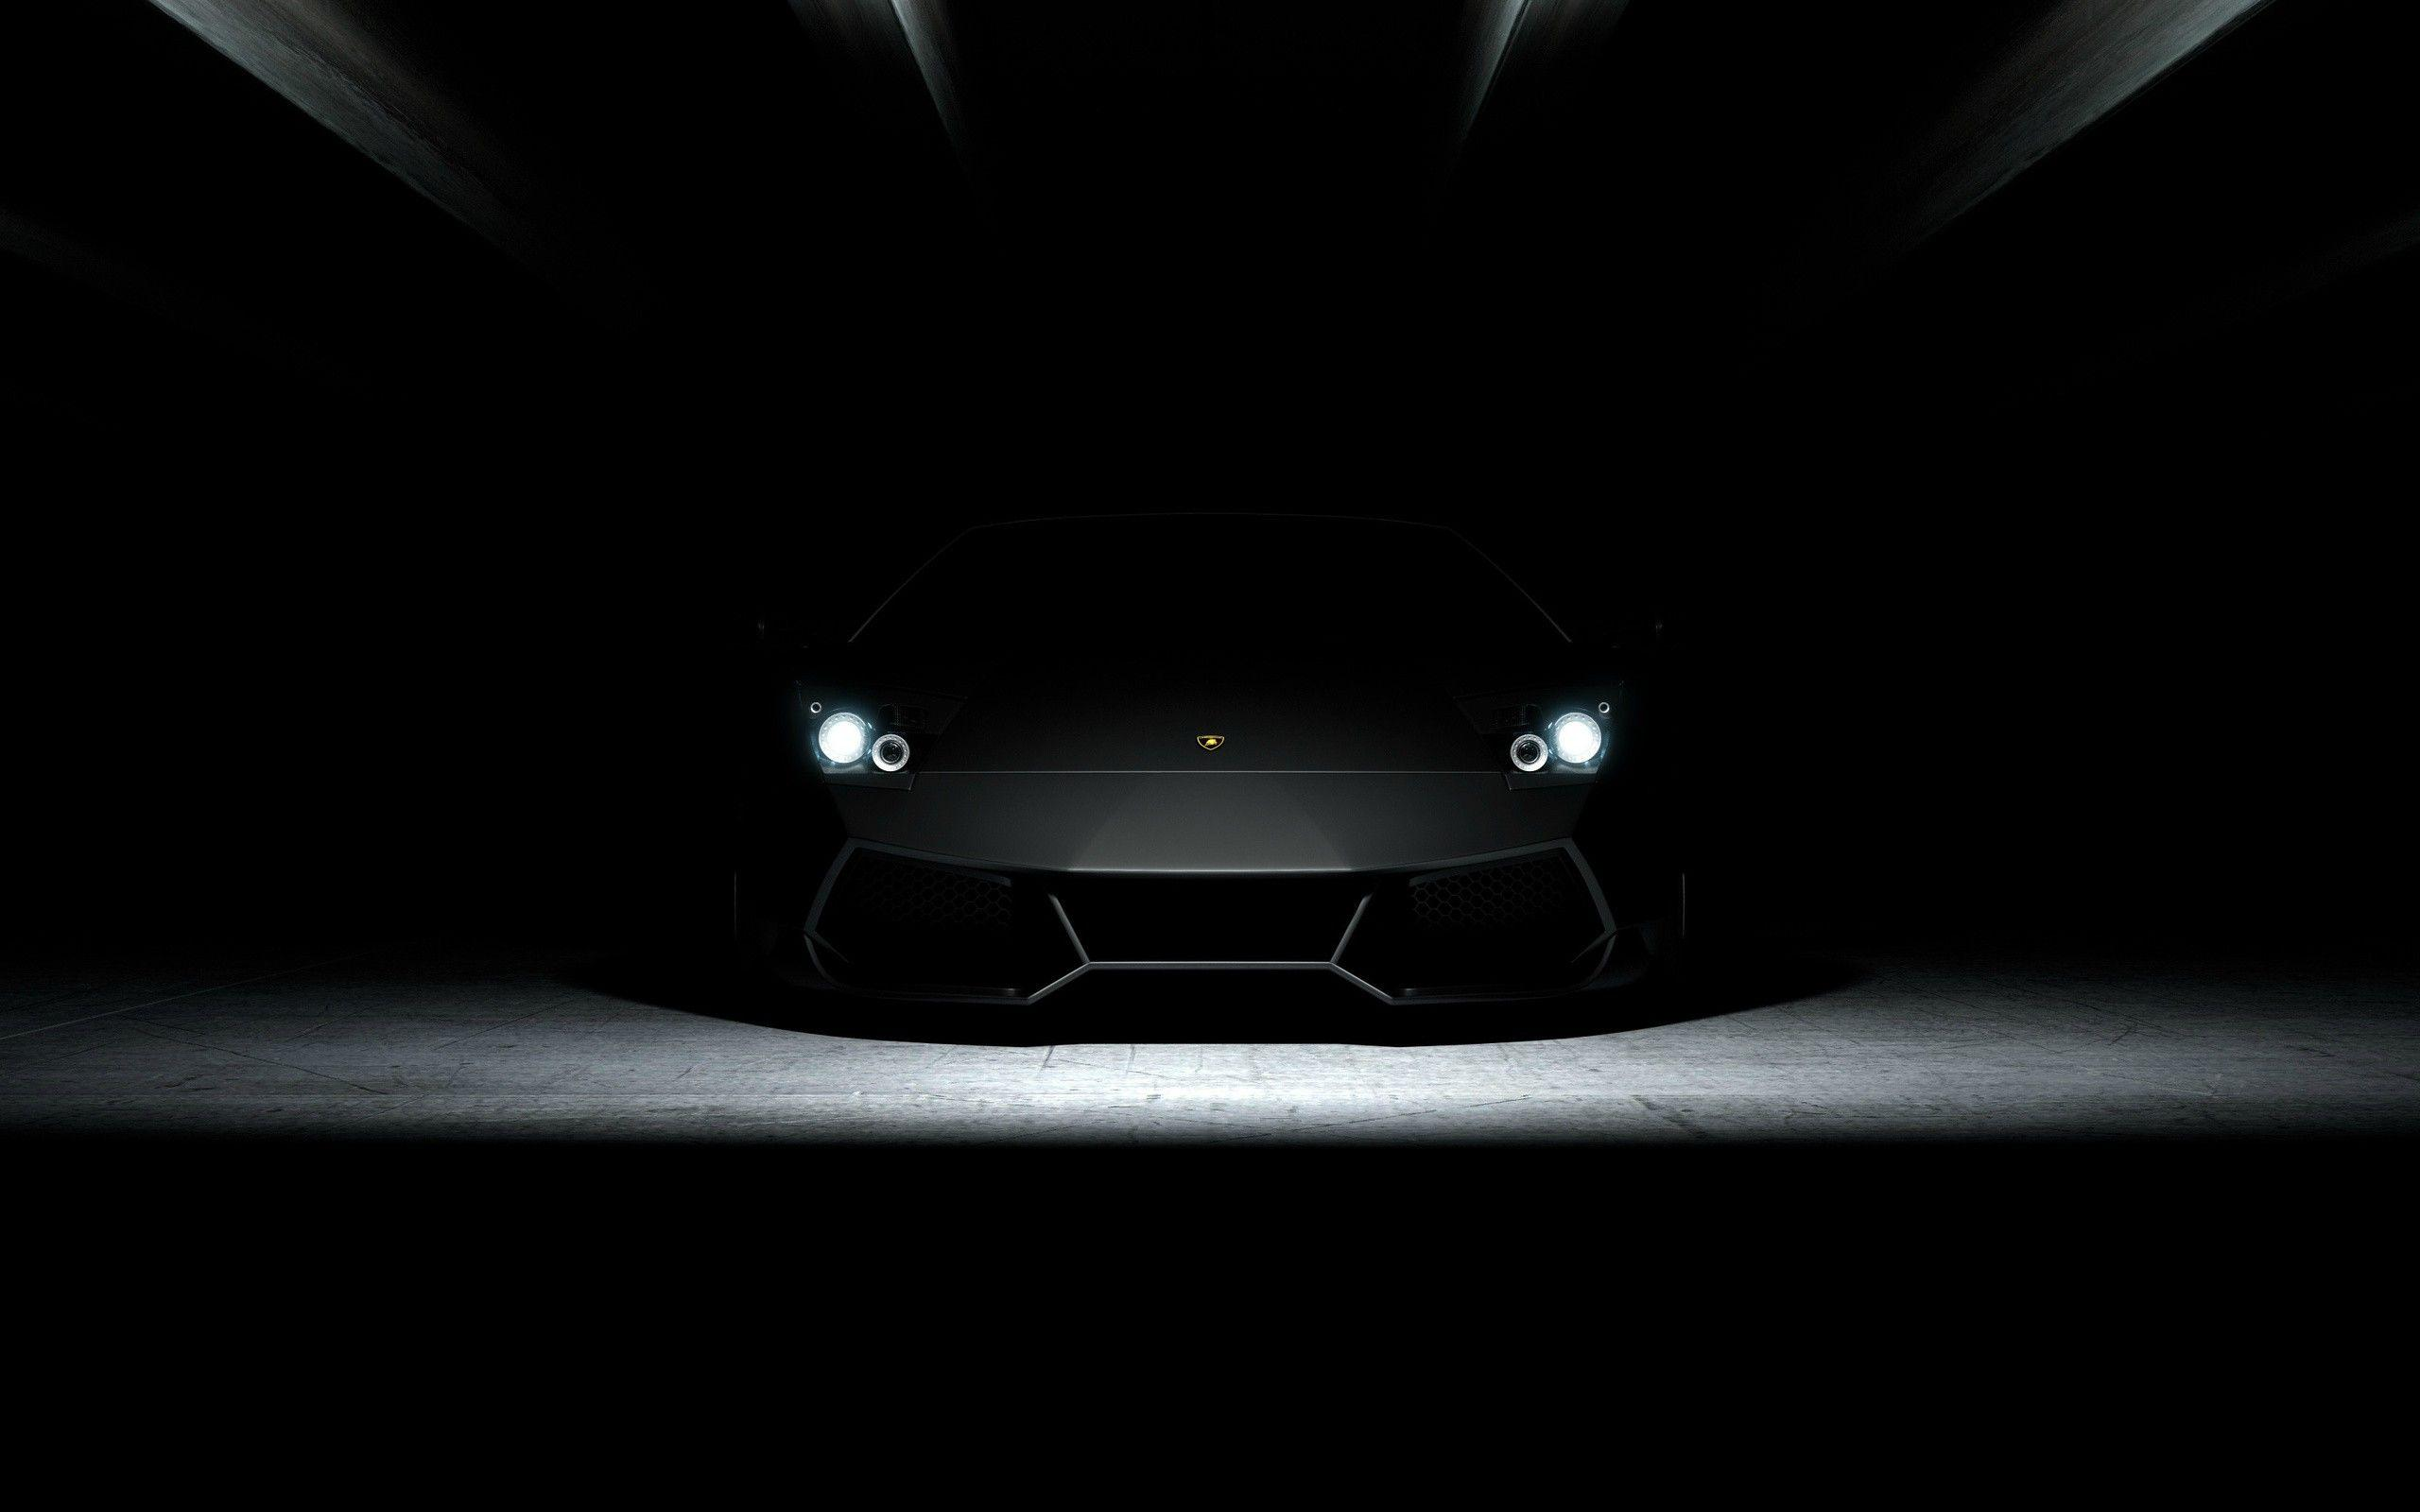 lamborghini wallpapers 1080p - wallpaper cave